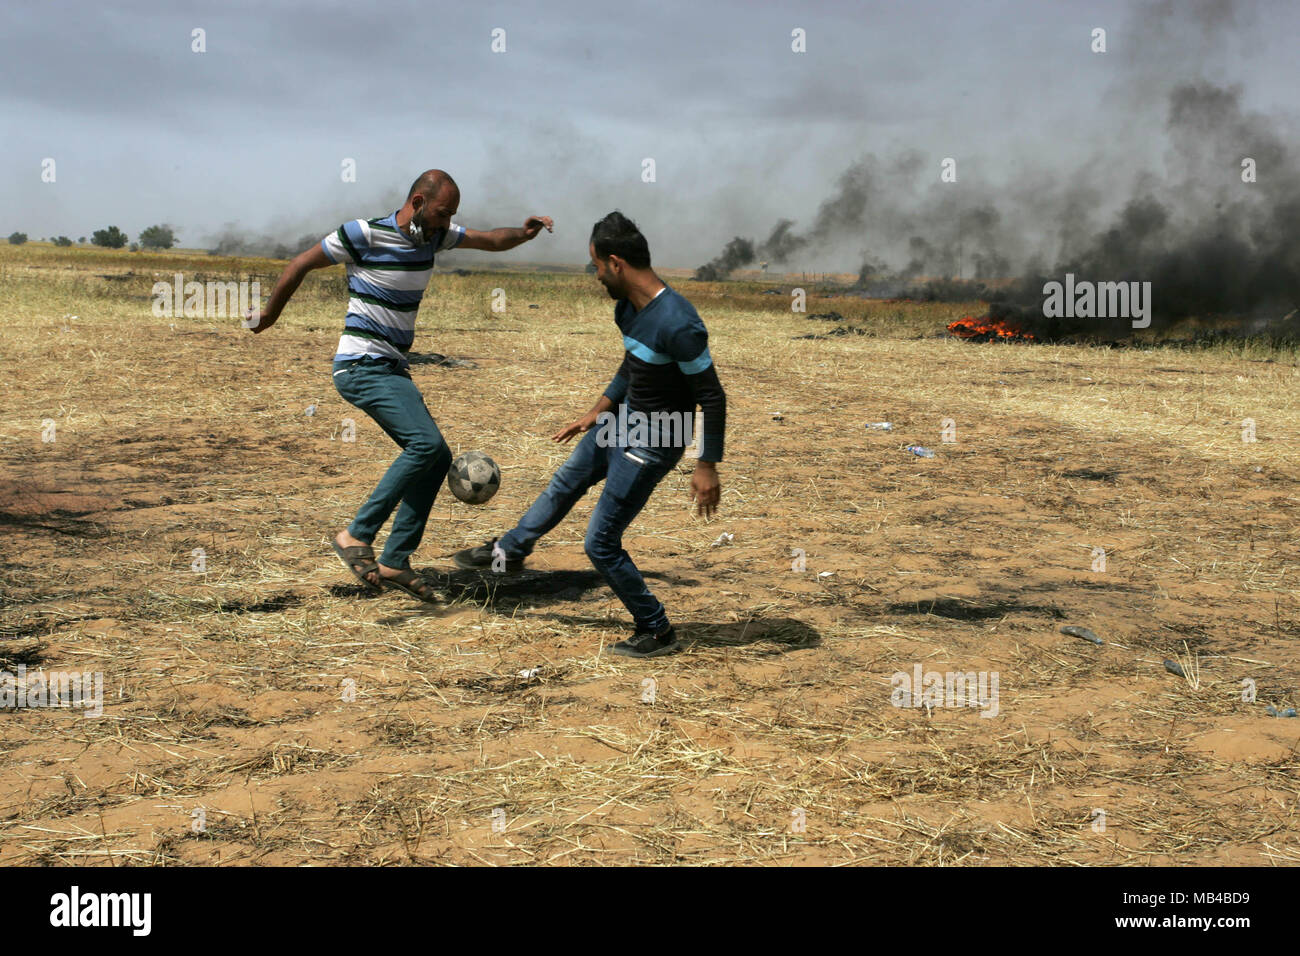 Simple Gaza Eid Al-Fitr 2018 - gaza-palestine-6th-apr-2018-palestinian-youths-playing-football-during-clashes-with-israeli-security-forces-on-the-gaza-israel-border-following-a-protest-east-of-khan-yunis-in-the-southern-gaza-strip-on-april-6-2018-clashes-erupted-on-the-gaza-israel-border-a-week-after-similar-demonstrations-led-to-violence-in-which-israeli-force-killed-19-palestinians-the-bloodiest-day-since-a-2014-war-credit-awakening-photo-agencyalamy-live-news-MB4BD9  Collection_605782 .jpg